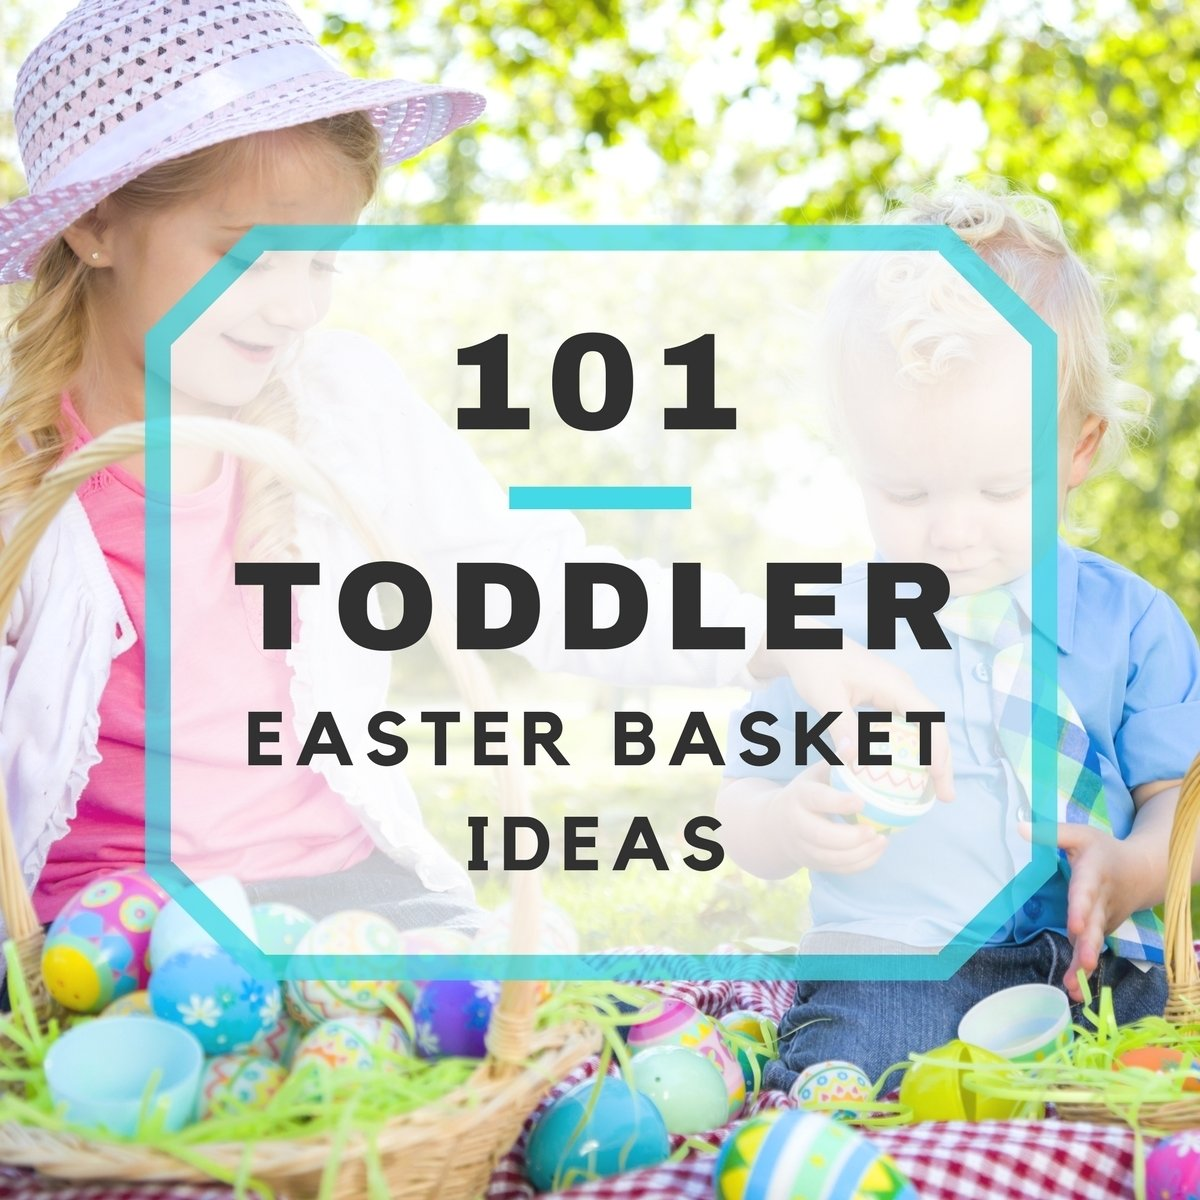 10 Elegant Easter Picture Ideas For Toddlers 101 toddler easter basket ideas